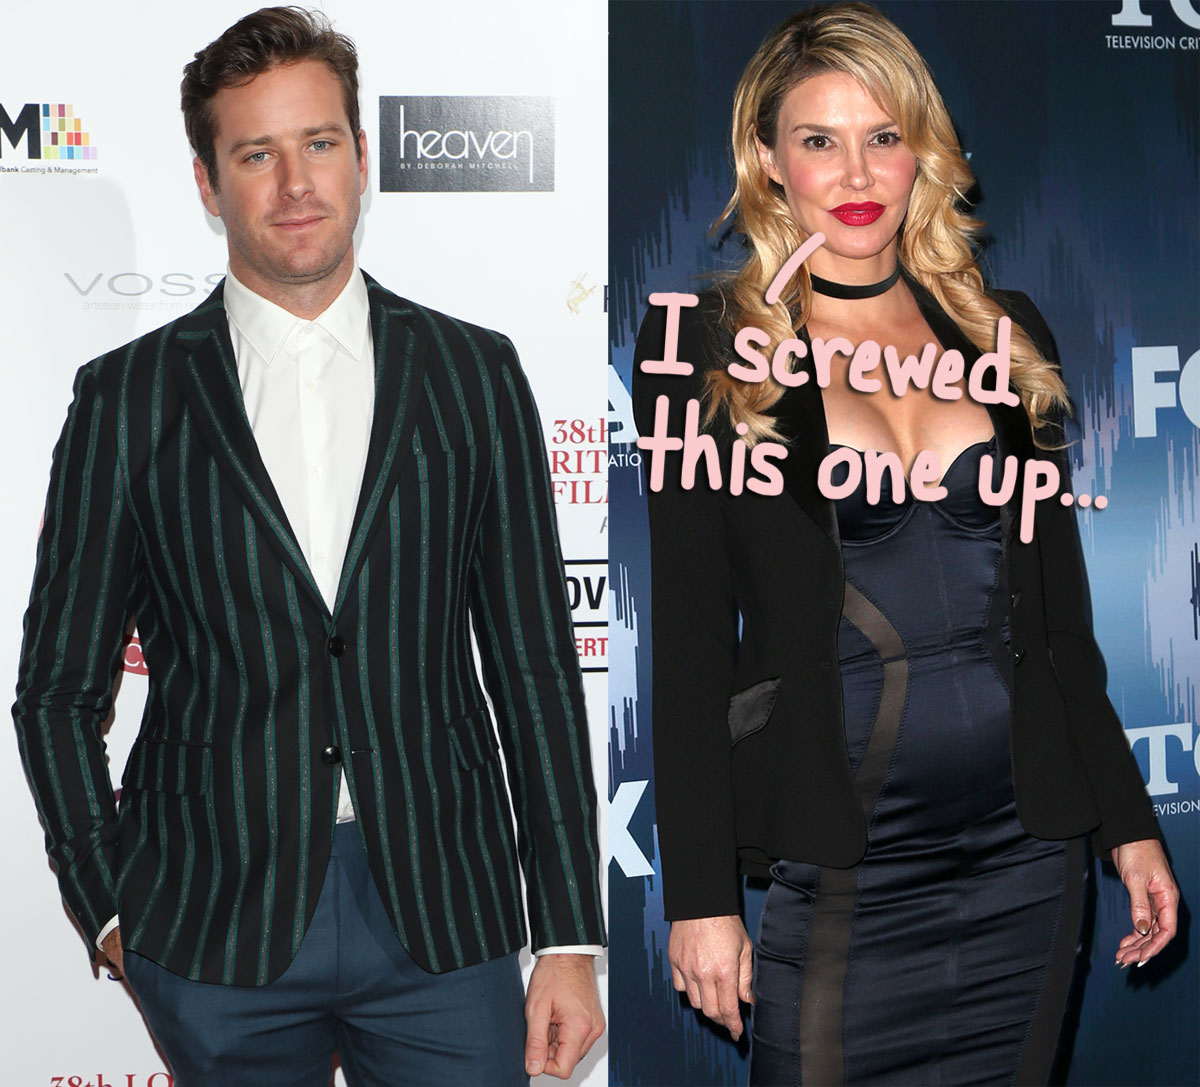 Brandi Glanville 'Learned Her Lesson' With Troublesome Armie Hammer Tweet — Read Her NEW Statement!